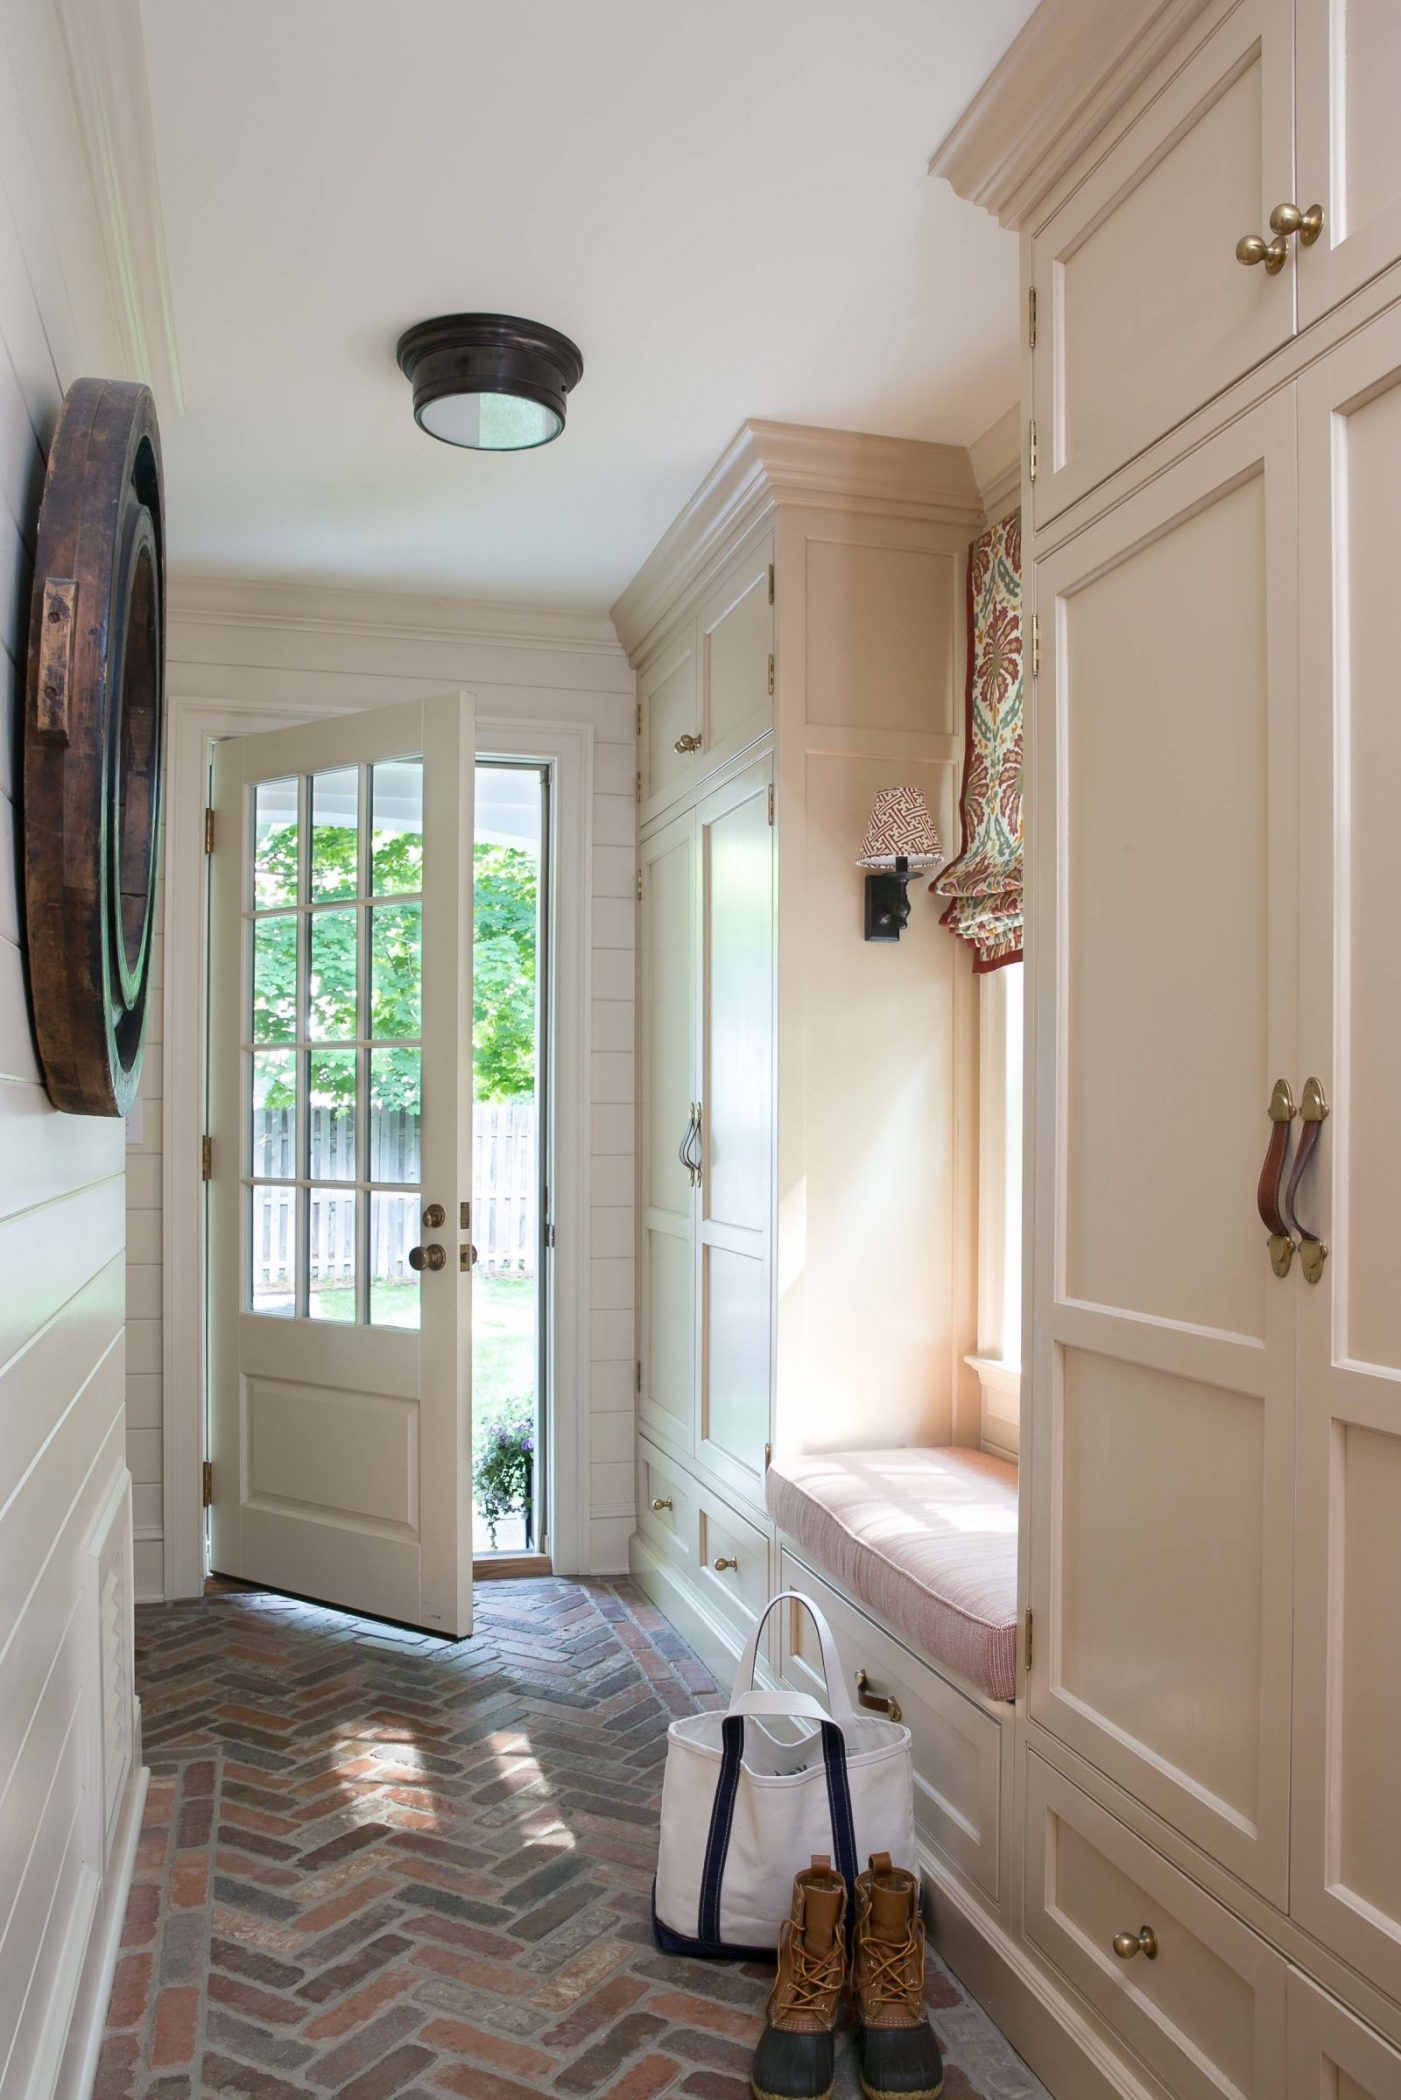 Room Design: Mudroom Ideas: How To Design A Mudroom For Different